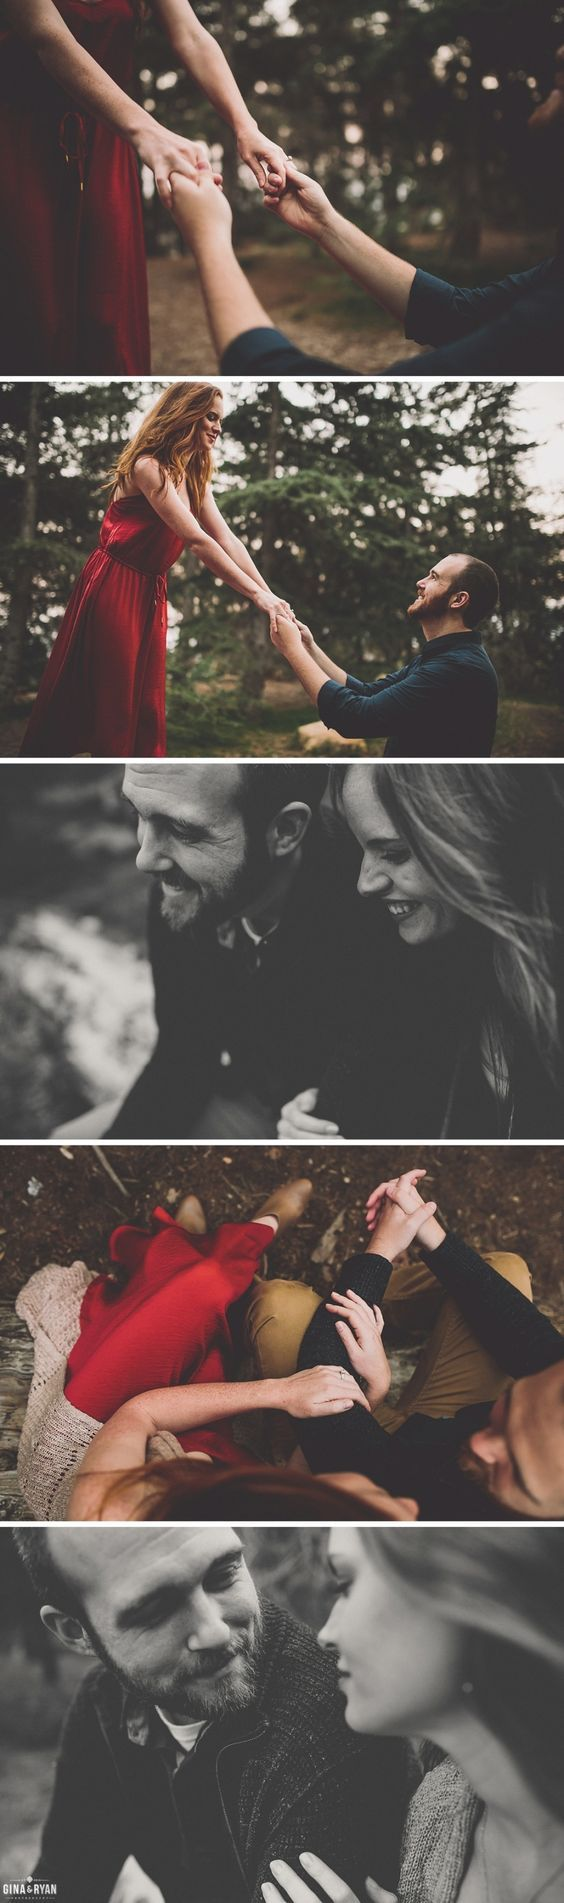 Swooning over this enchanted forest wedding photo…